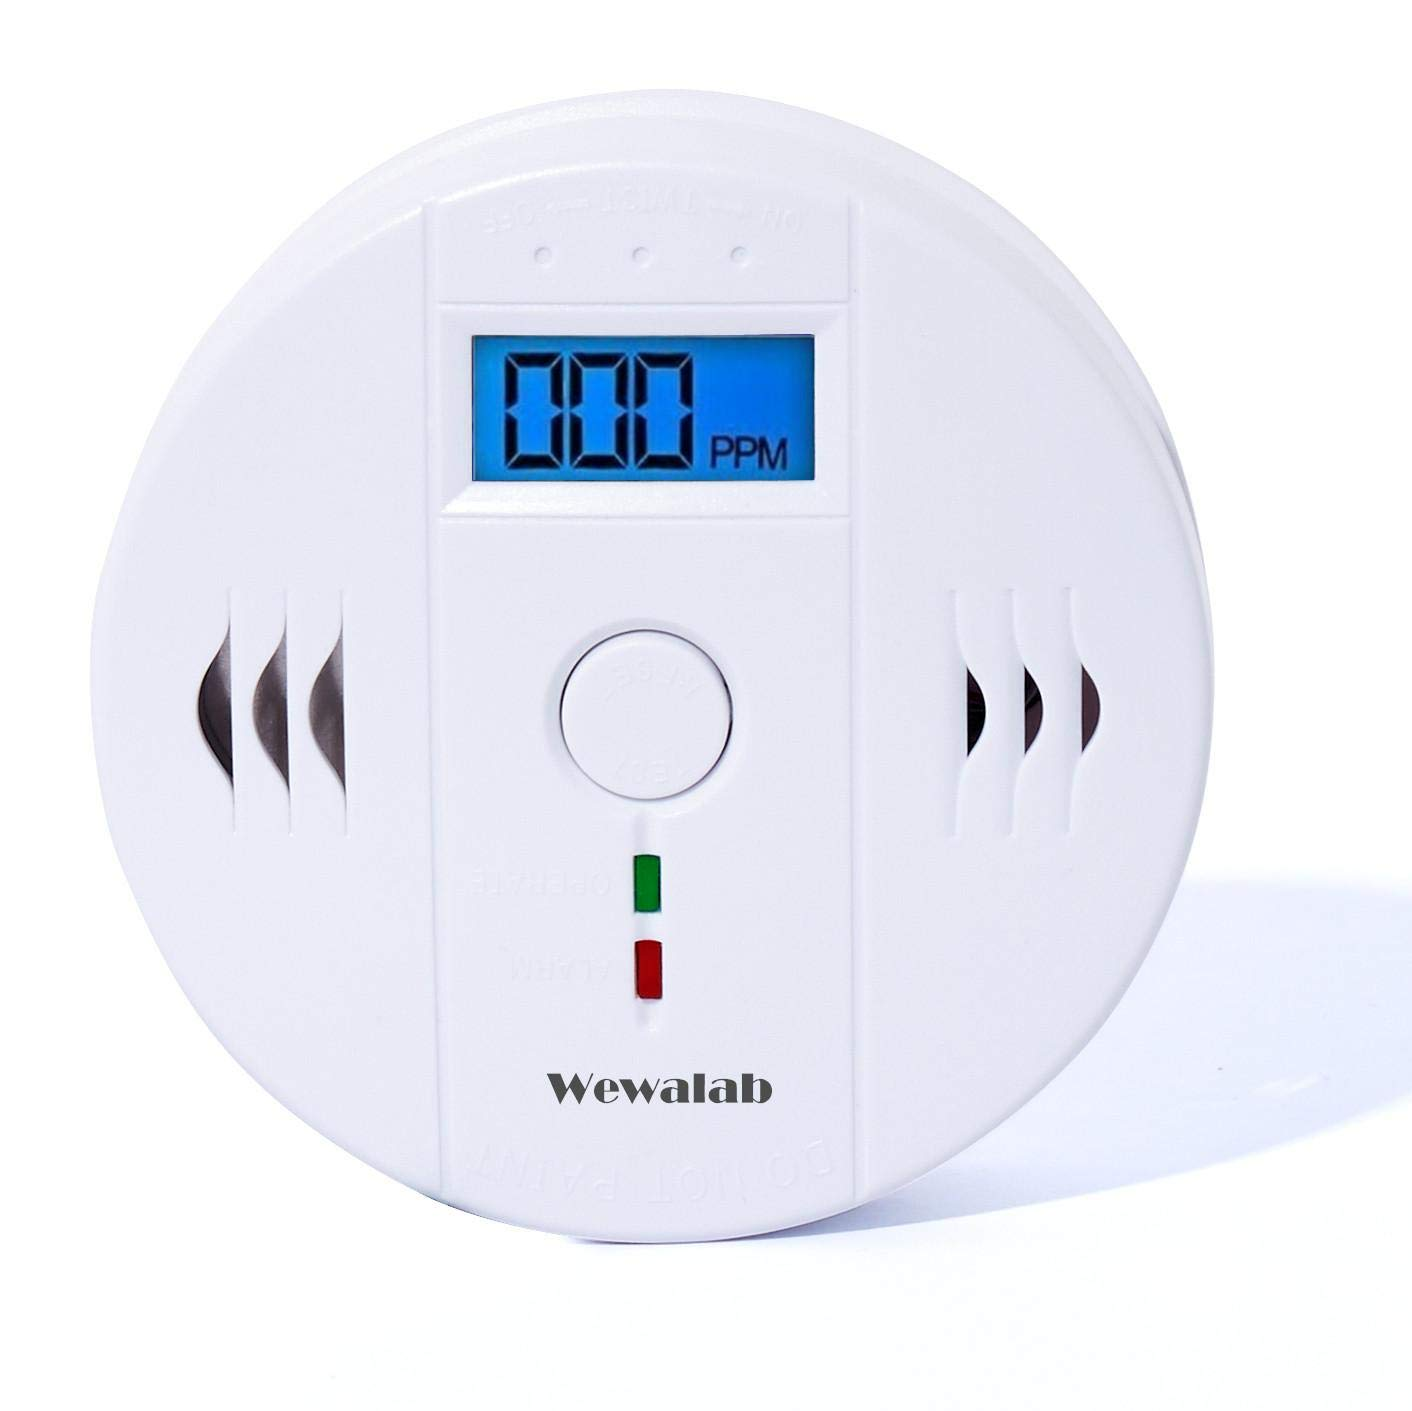 CO Detector Carbon,Wewalab Monoxide Alarm LCD Portable Security Gas CO Monitor,Battery Powered (Battery not Included)